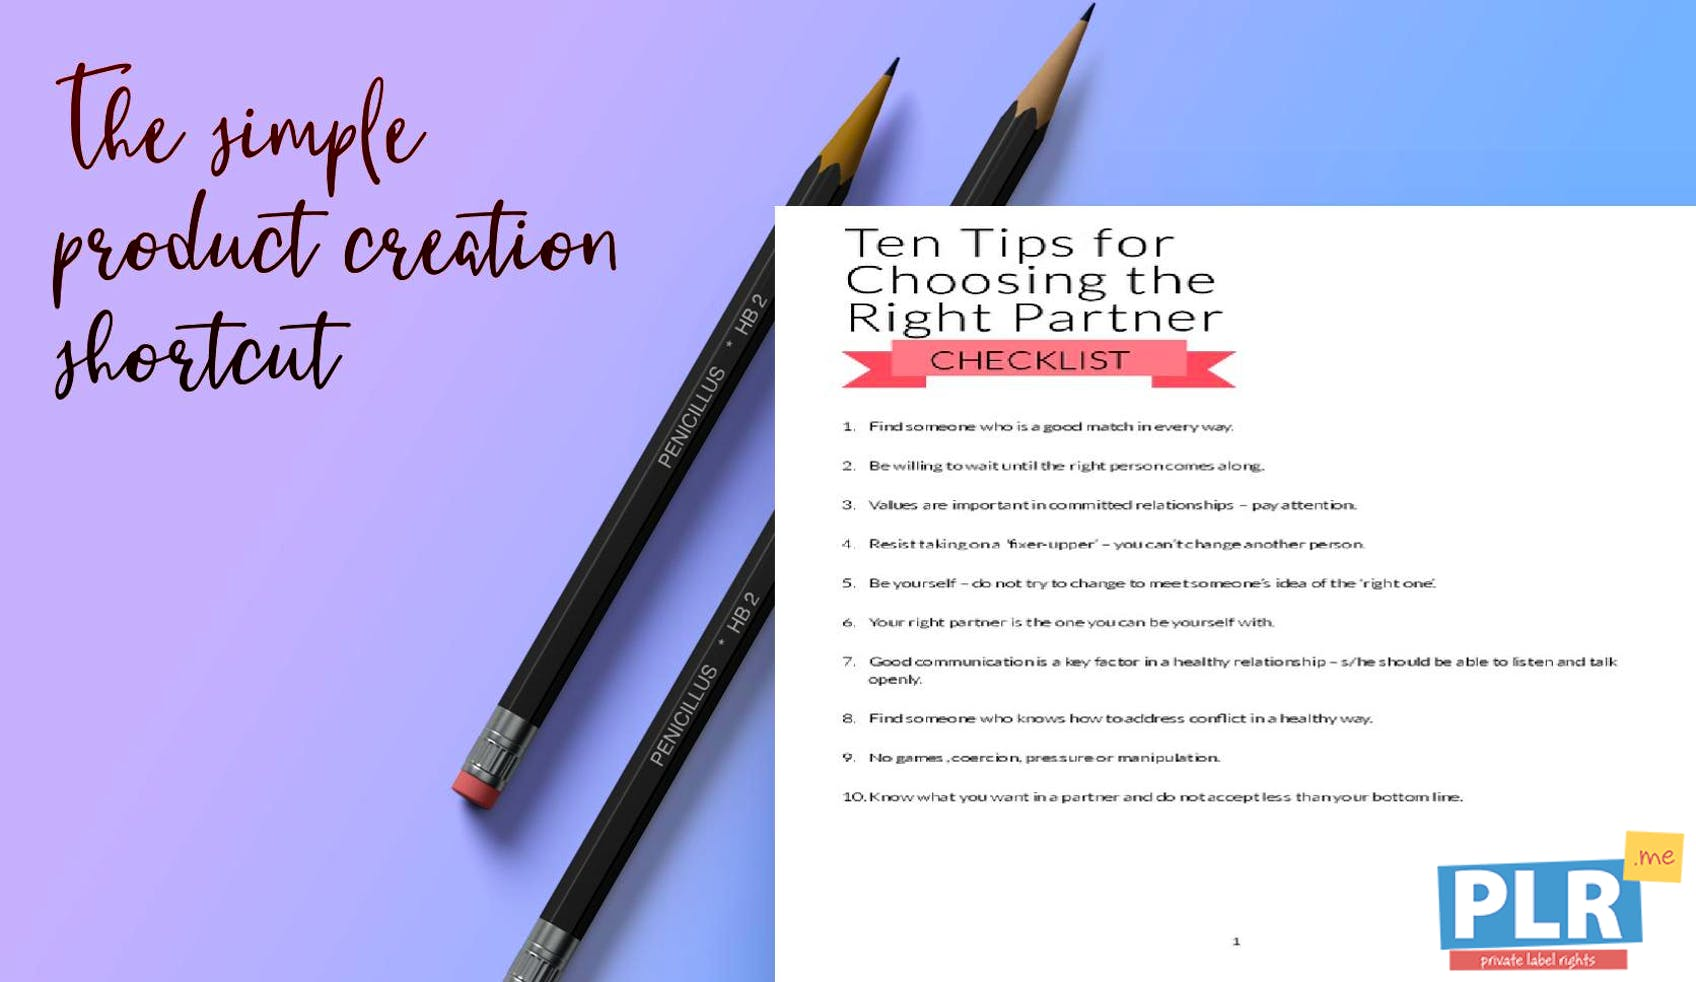 Ten Tips For Choosing The Right Partner Checklist